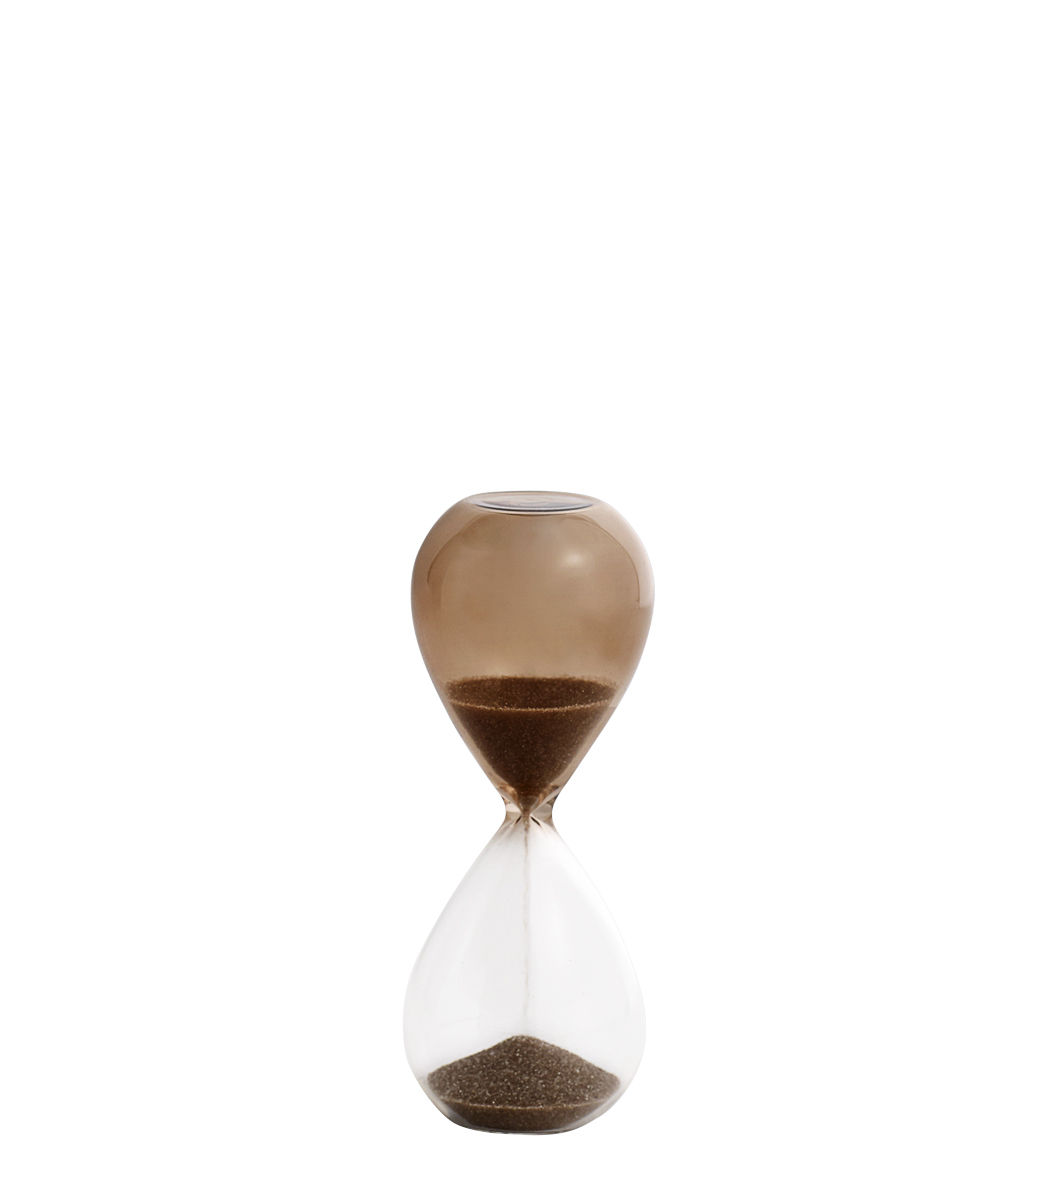 Kitchenware - Kitchen Equipment - Time Small Egg timer - / 3 minutes - H 9 cm by Hay - Transparent / Nude - Glass, Sand